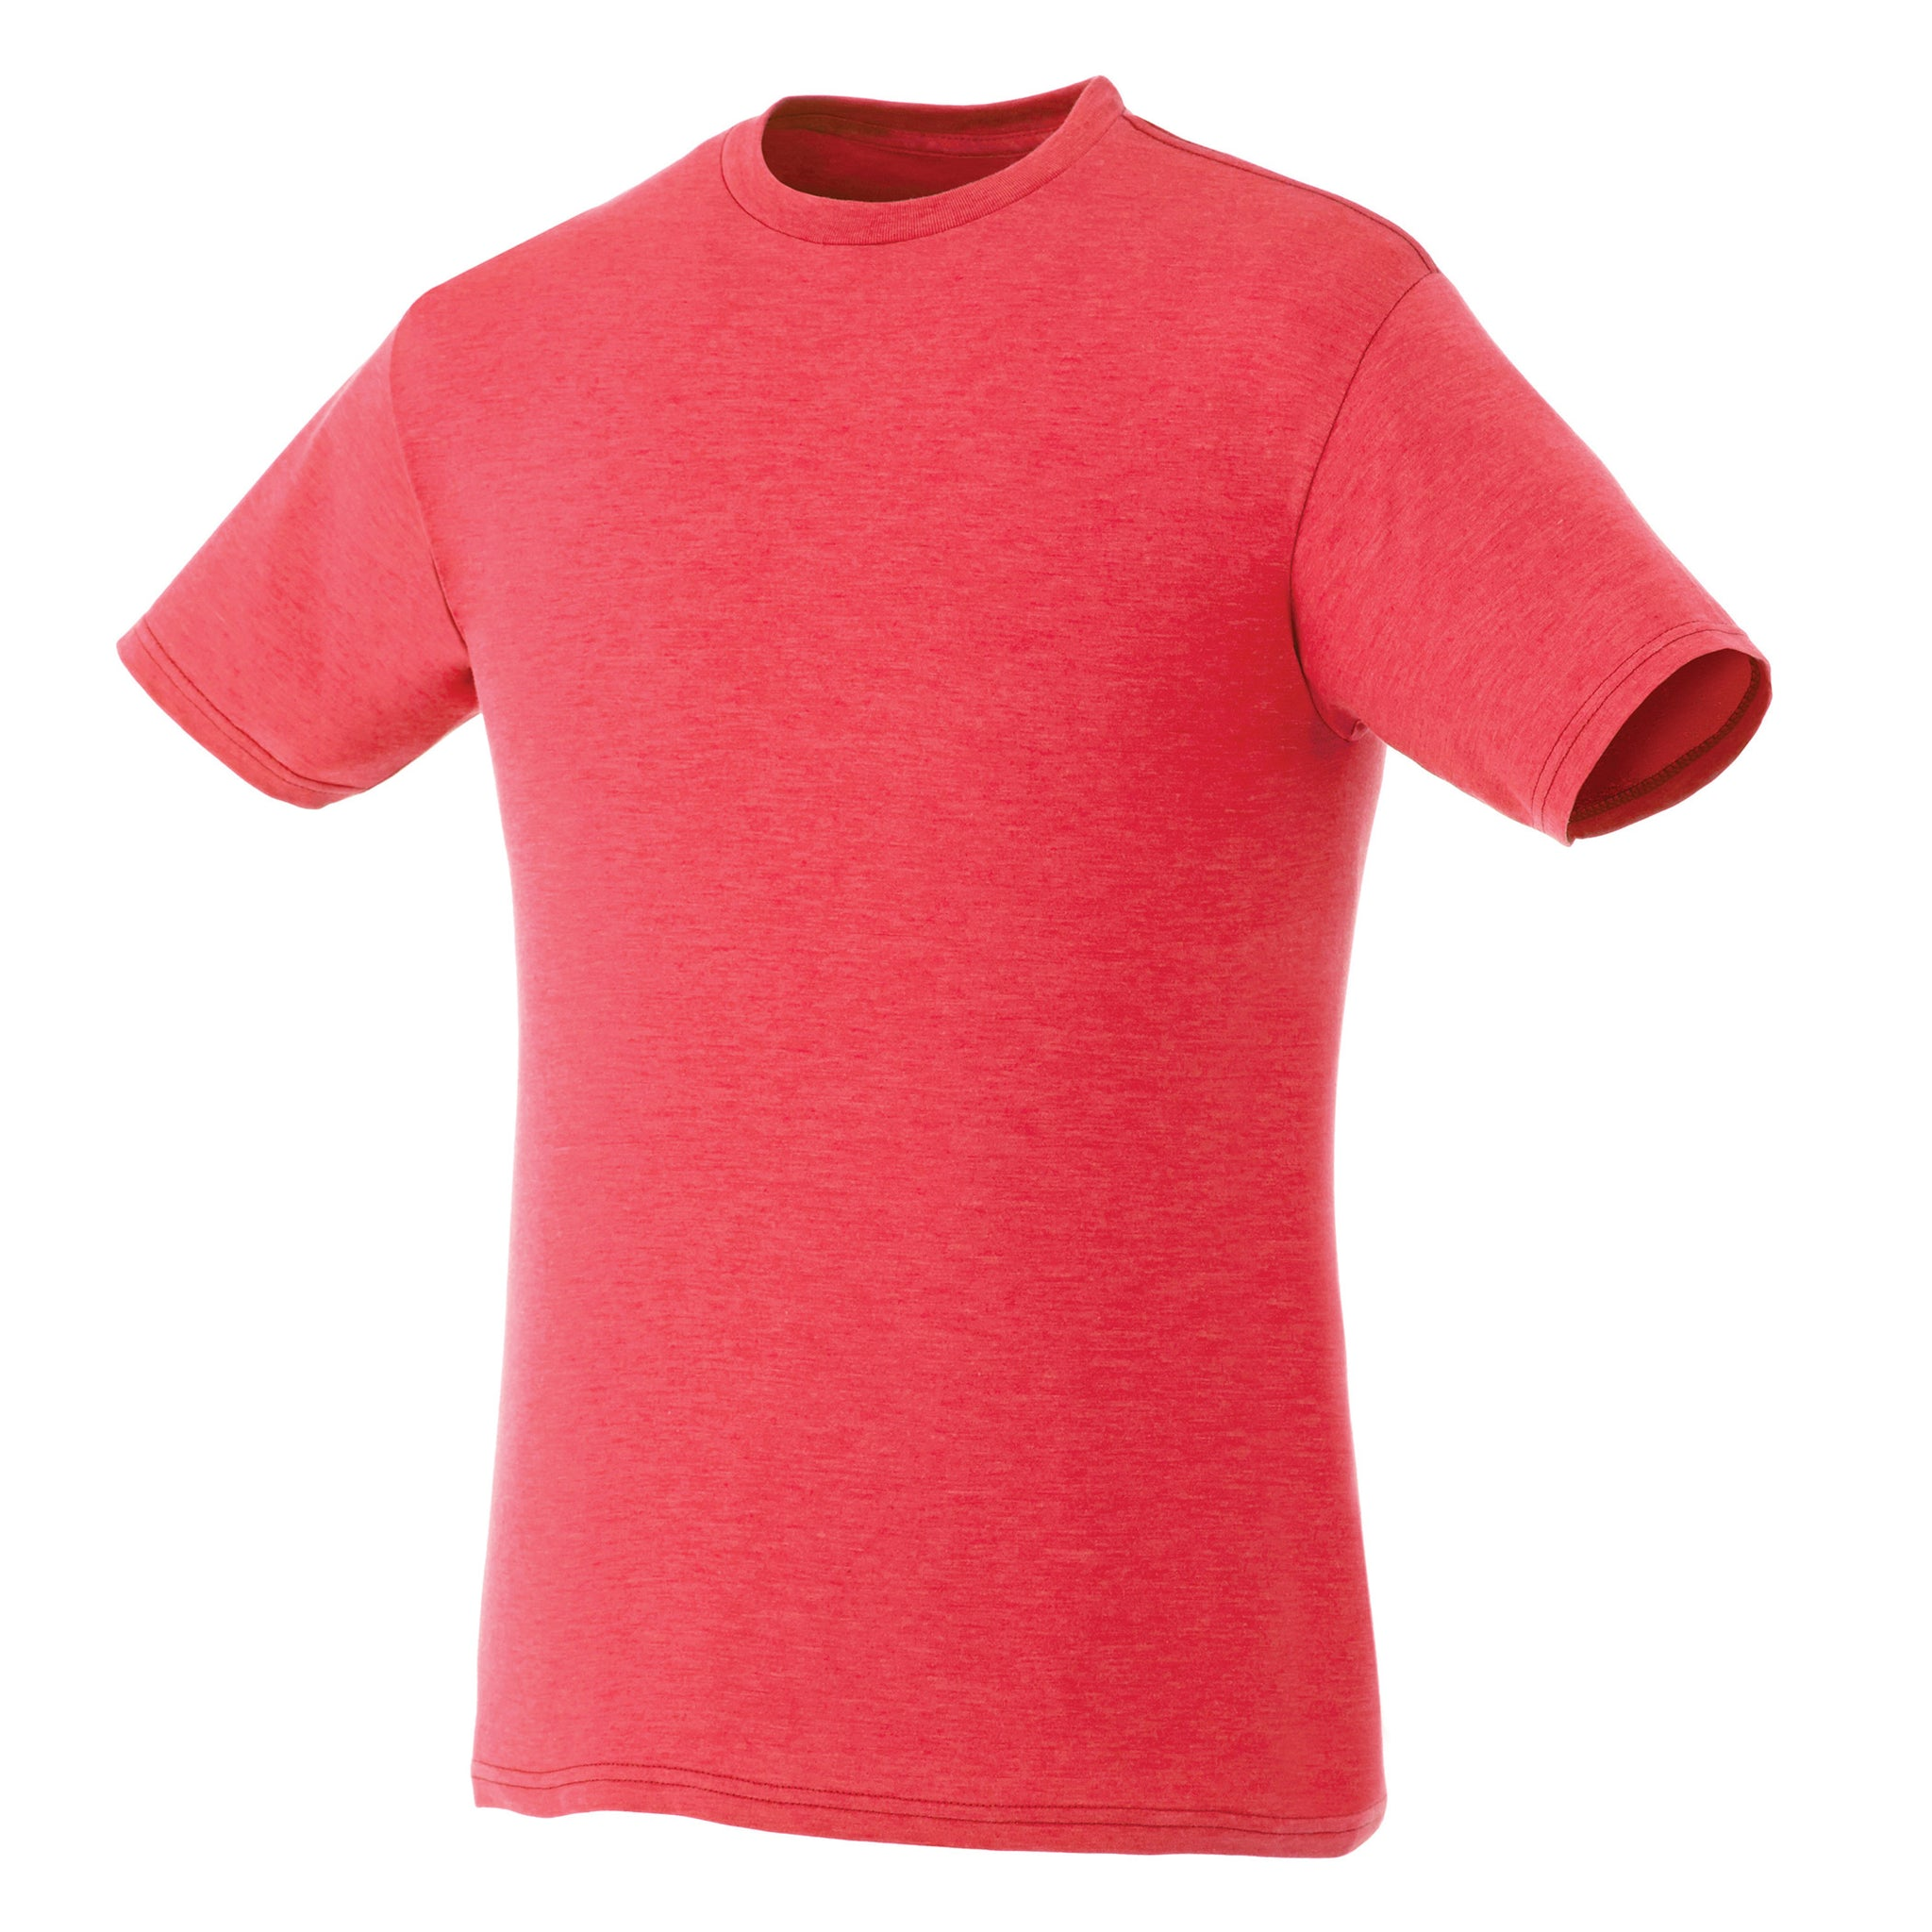 TRIMARK YOUTH BODIE T-SHIRT